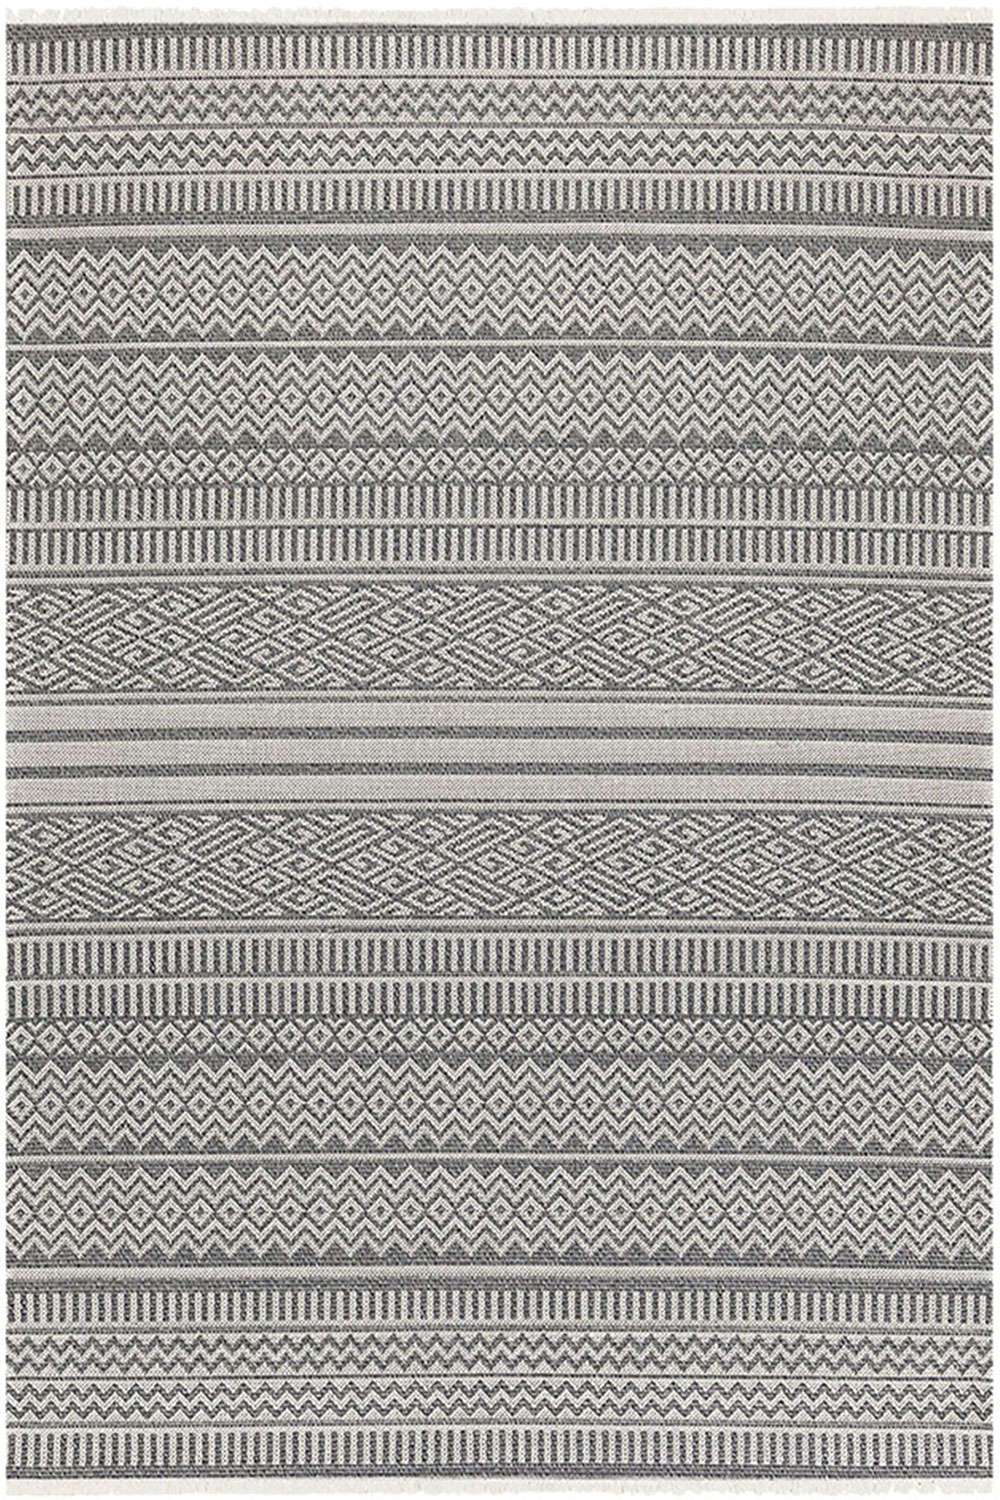 Χαλί Casa Cotton 22092 Grey Royal Carpet 160X230